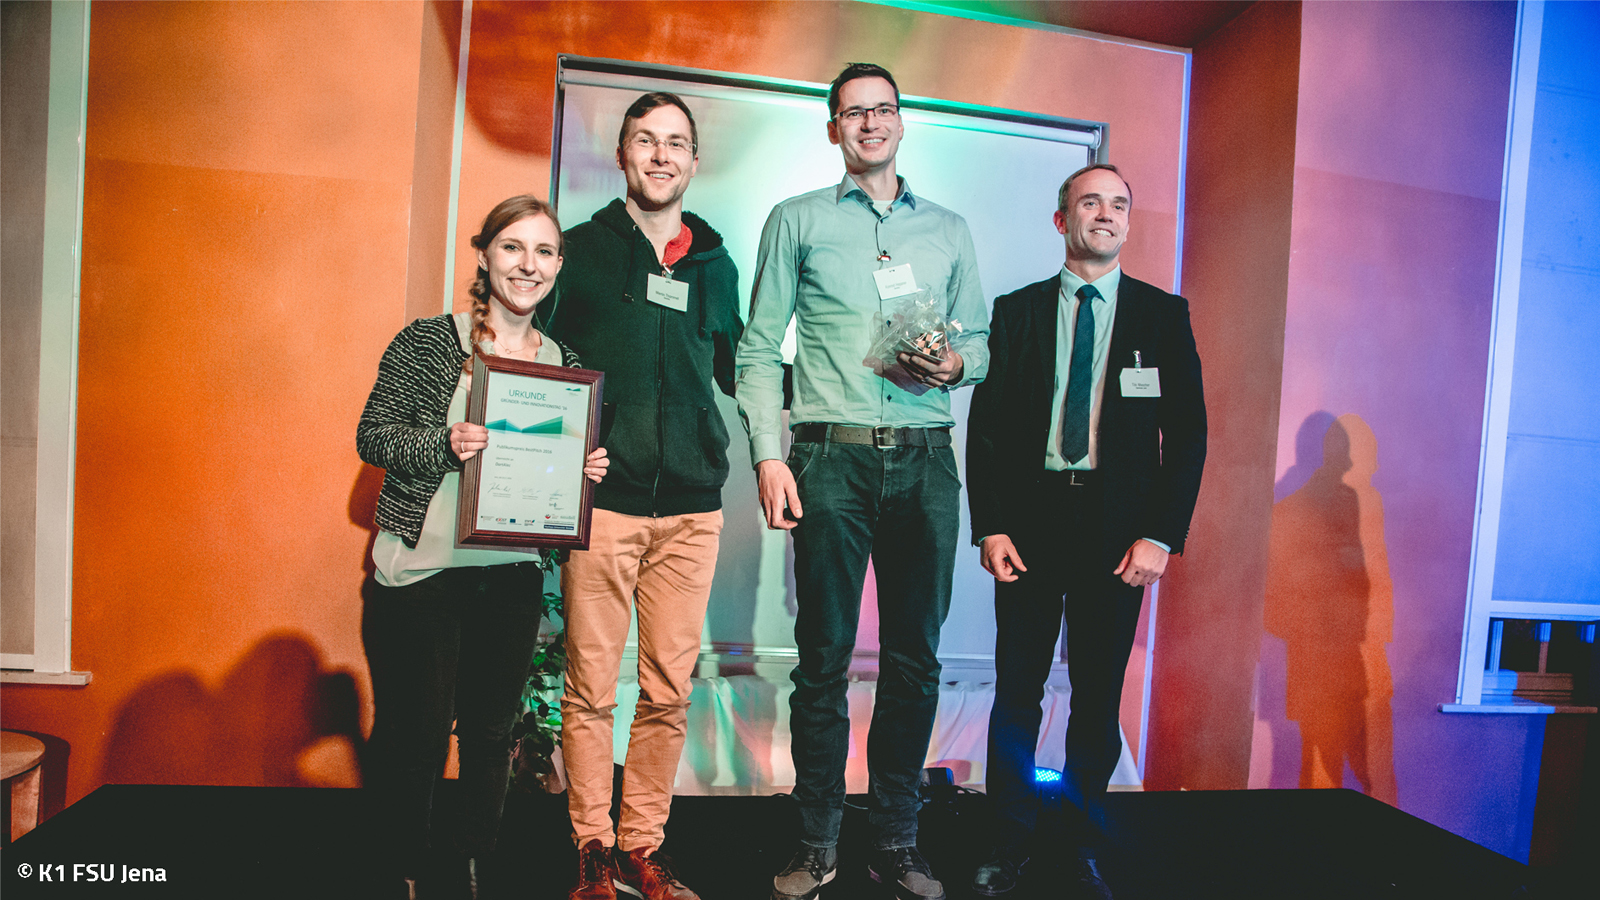 spiderbull wins audience award at founder and innovation day